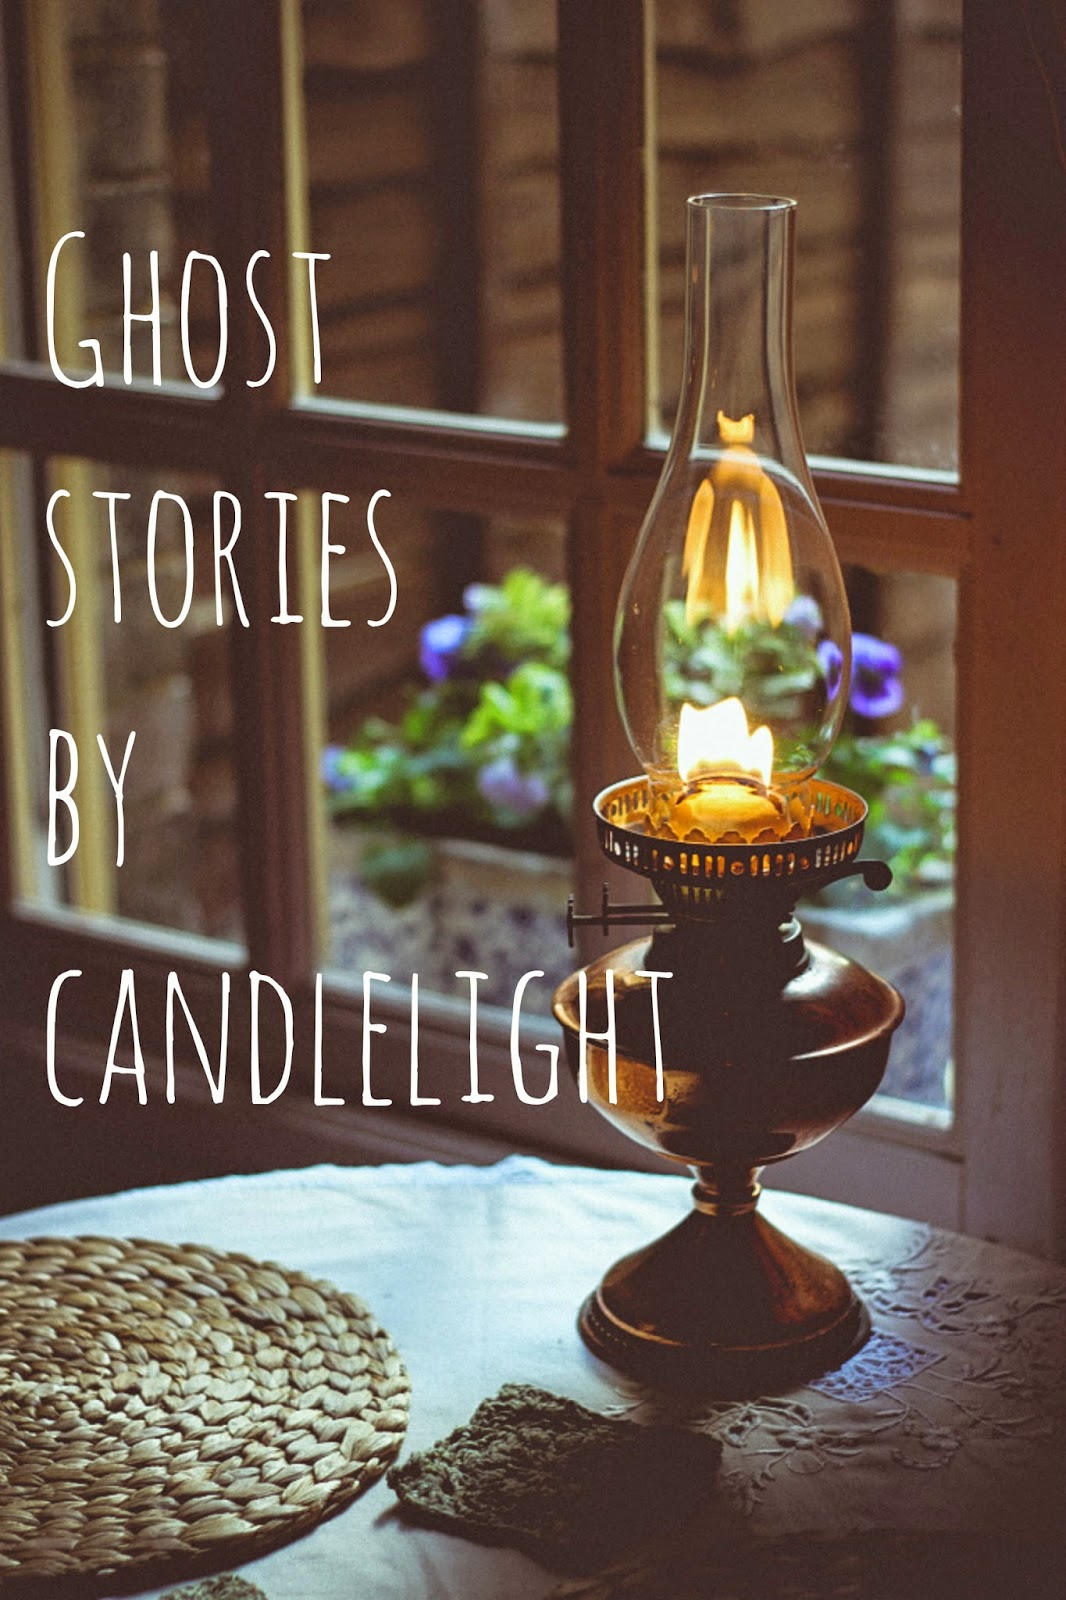 ghost stories by candlelight